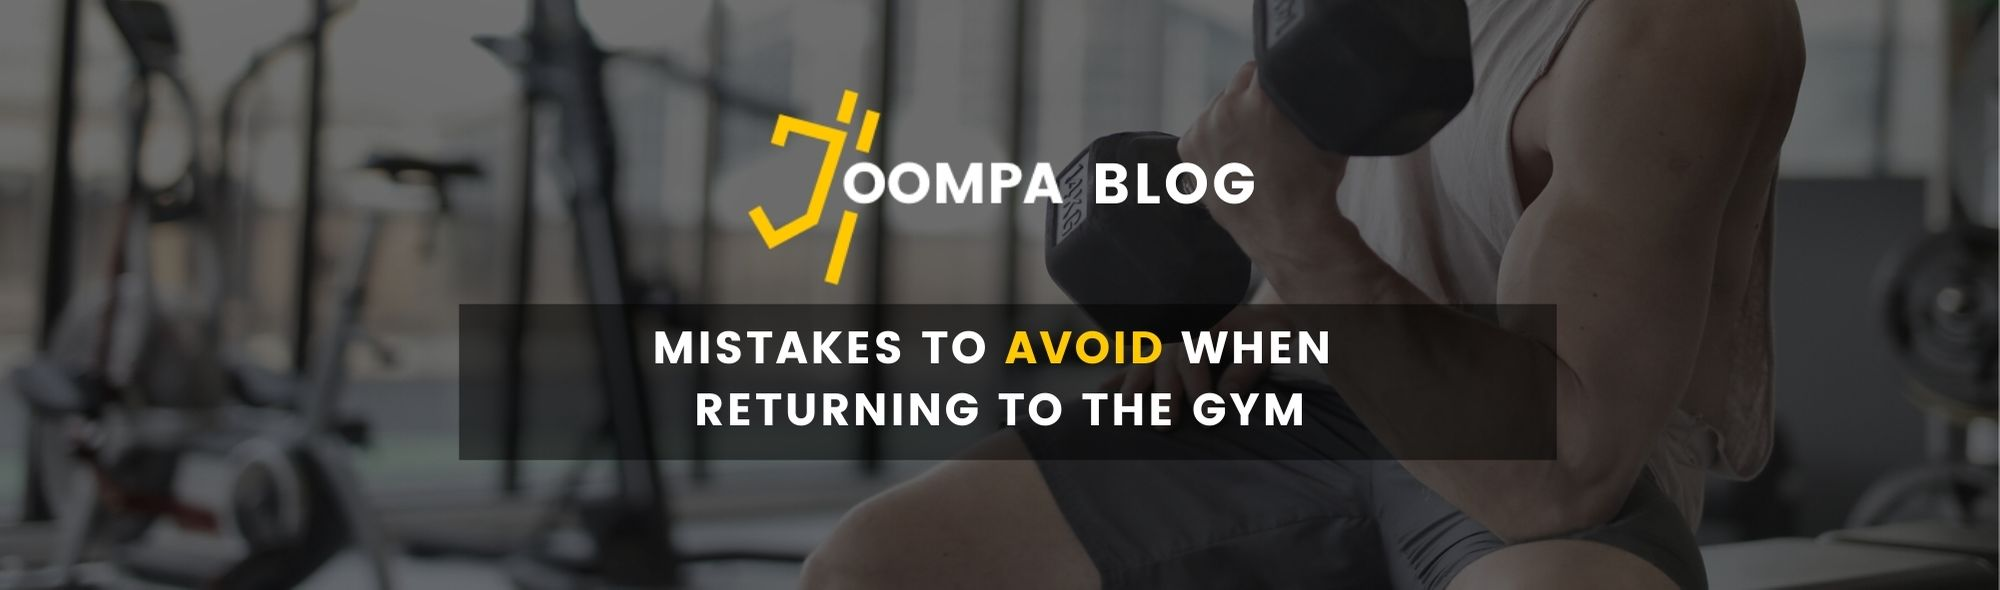 Mistakes to avoid when returning to the gym